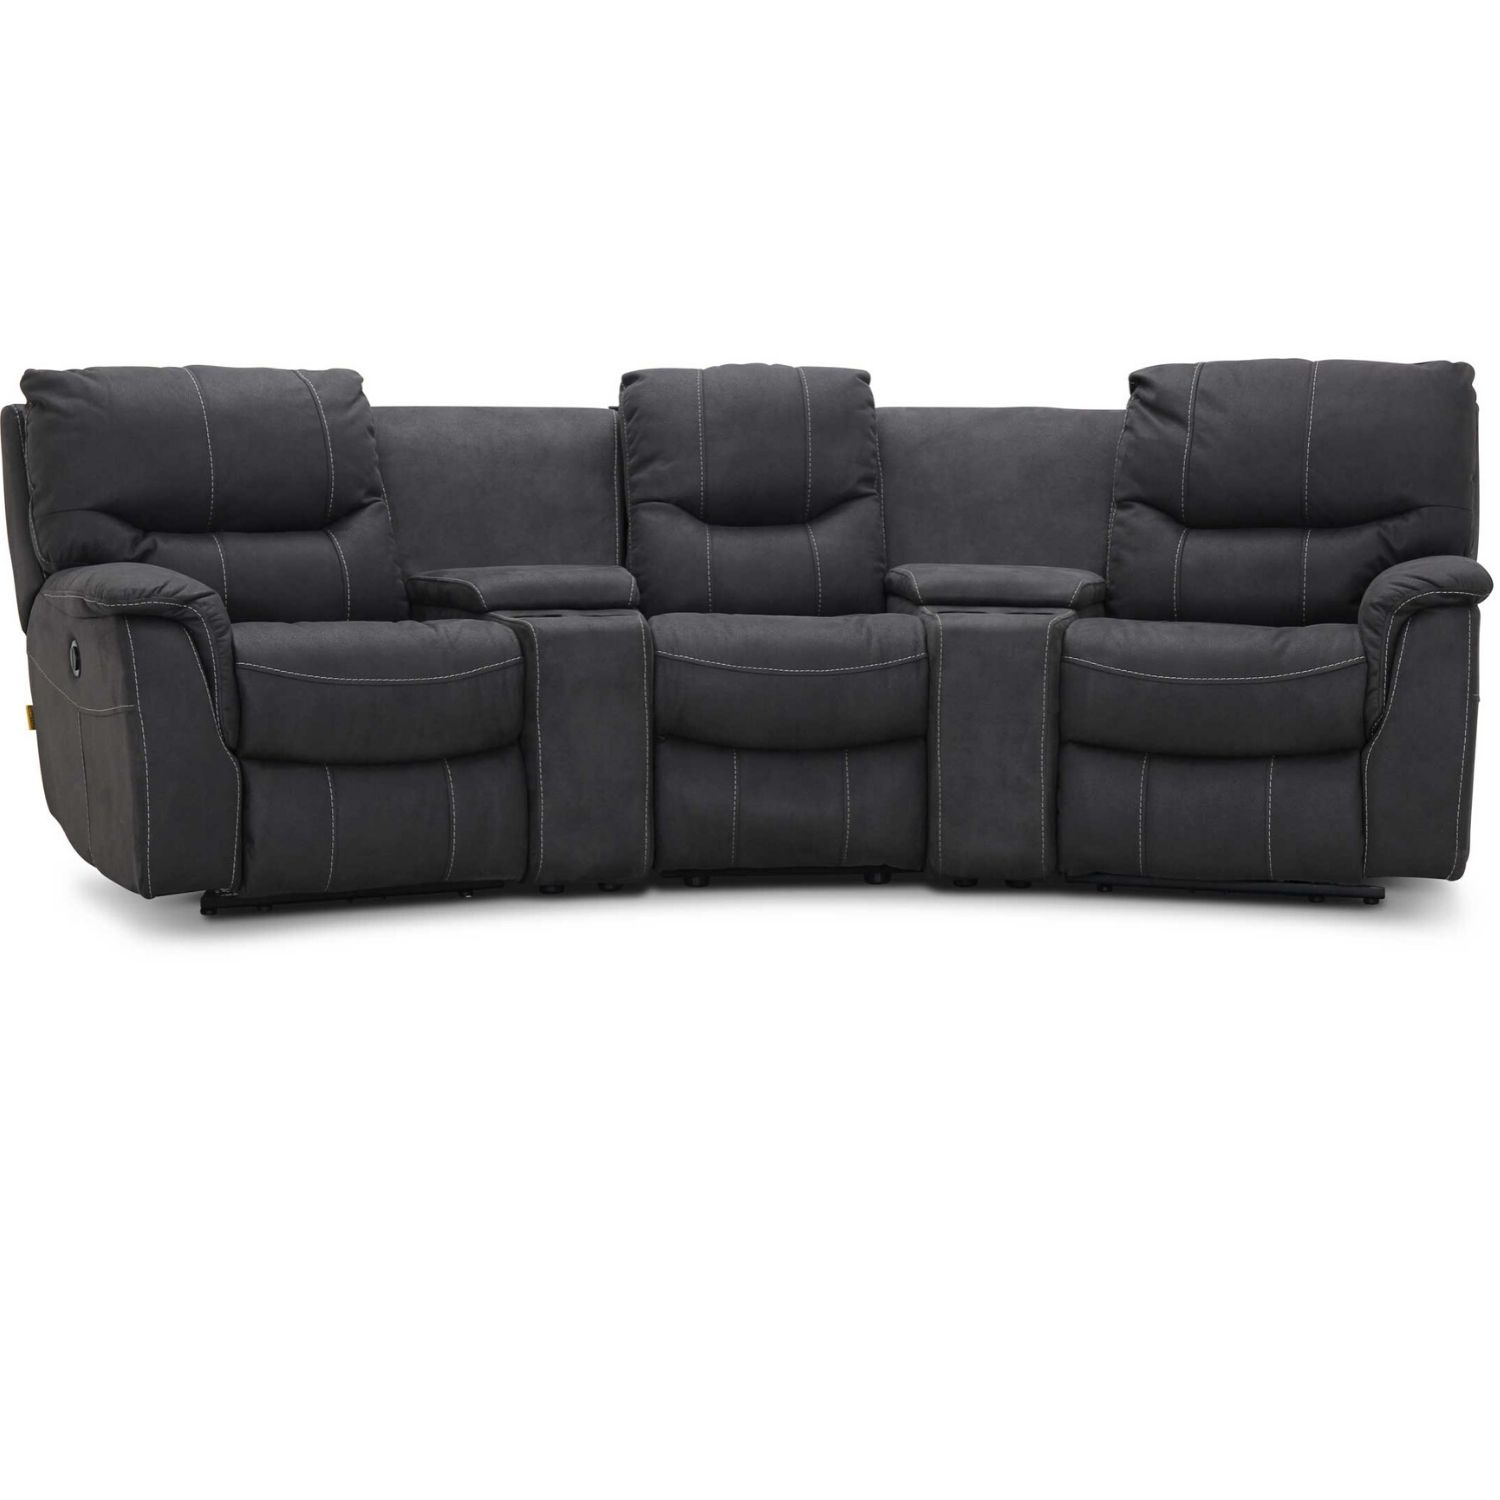 Image of   HAGA Colorado sofa - grafit grå stof, 3 pers., m. recliner funktion